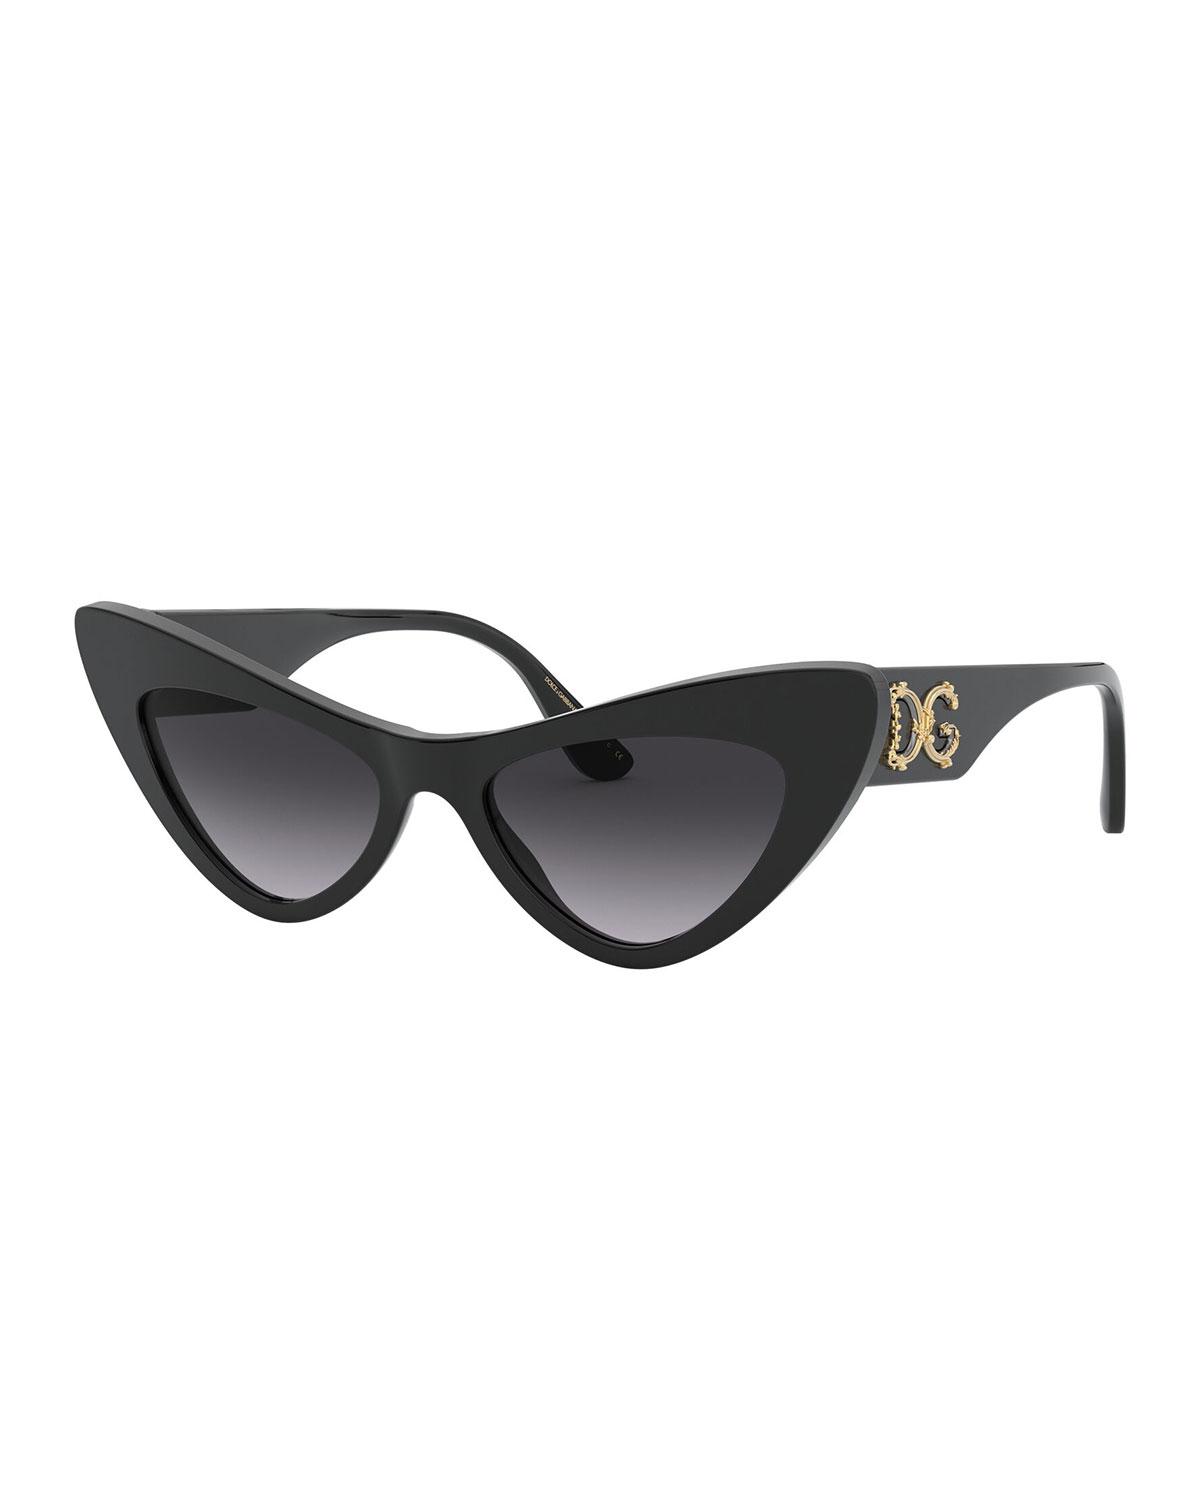 Dolce & Gabbana Acetate Cat-Eye Sunglasses w/ Logo Hardware